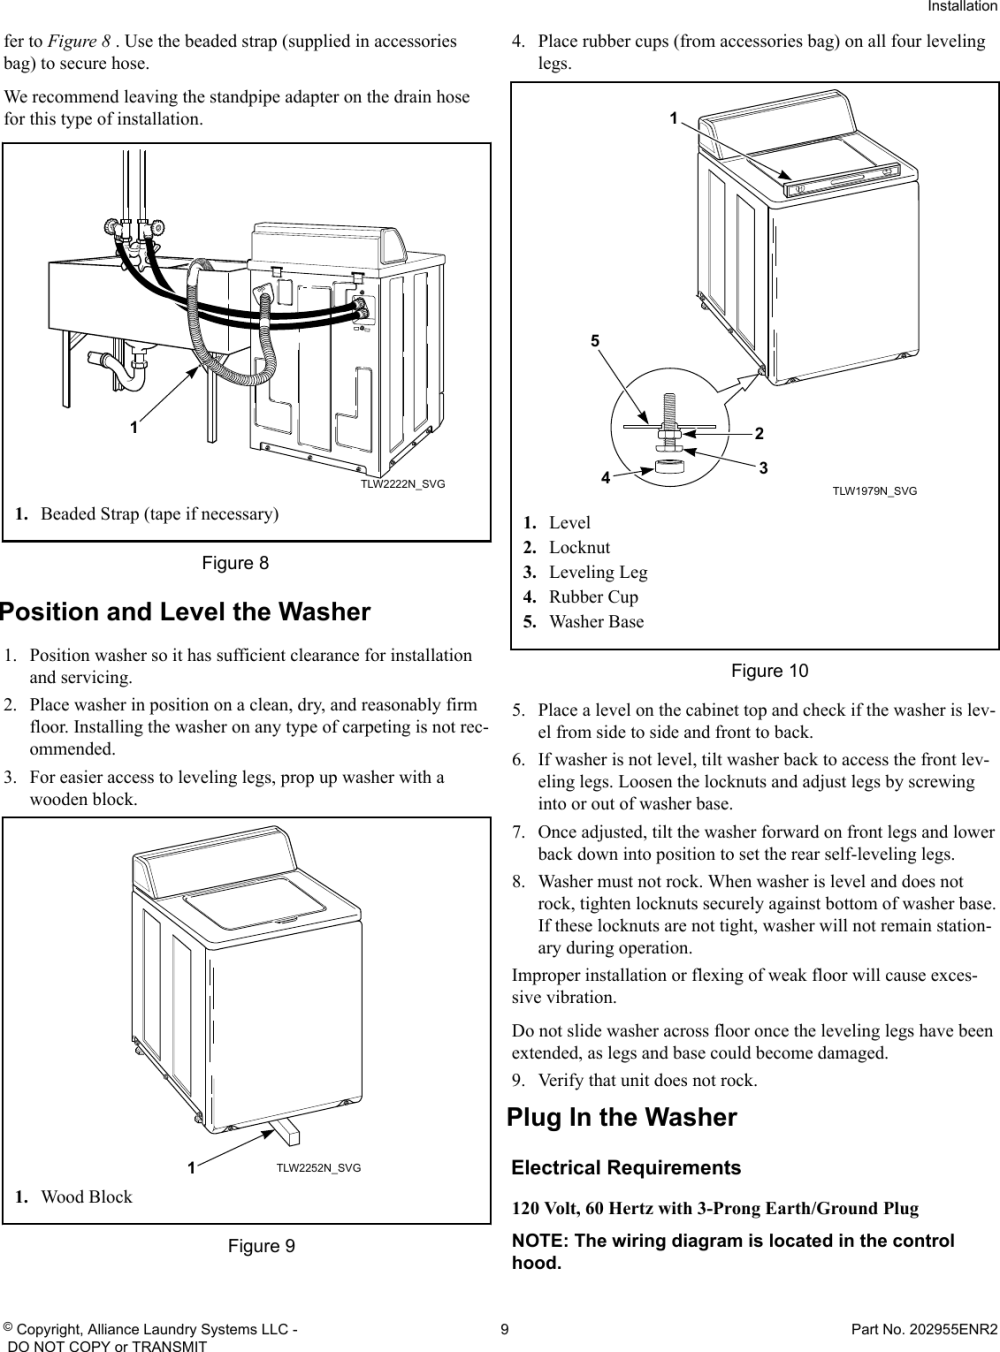 medium resolution of page 9 of 12 alliance awne82sp113tw01 installation instructions user manual washer manuals and guides